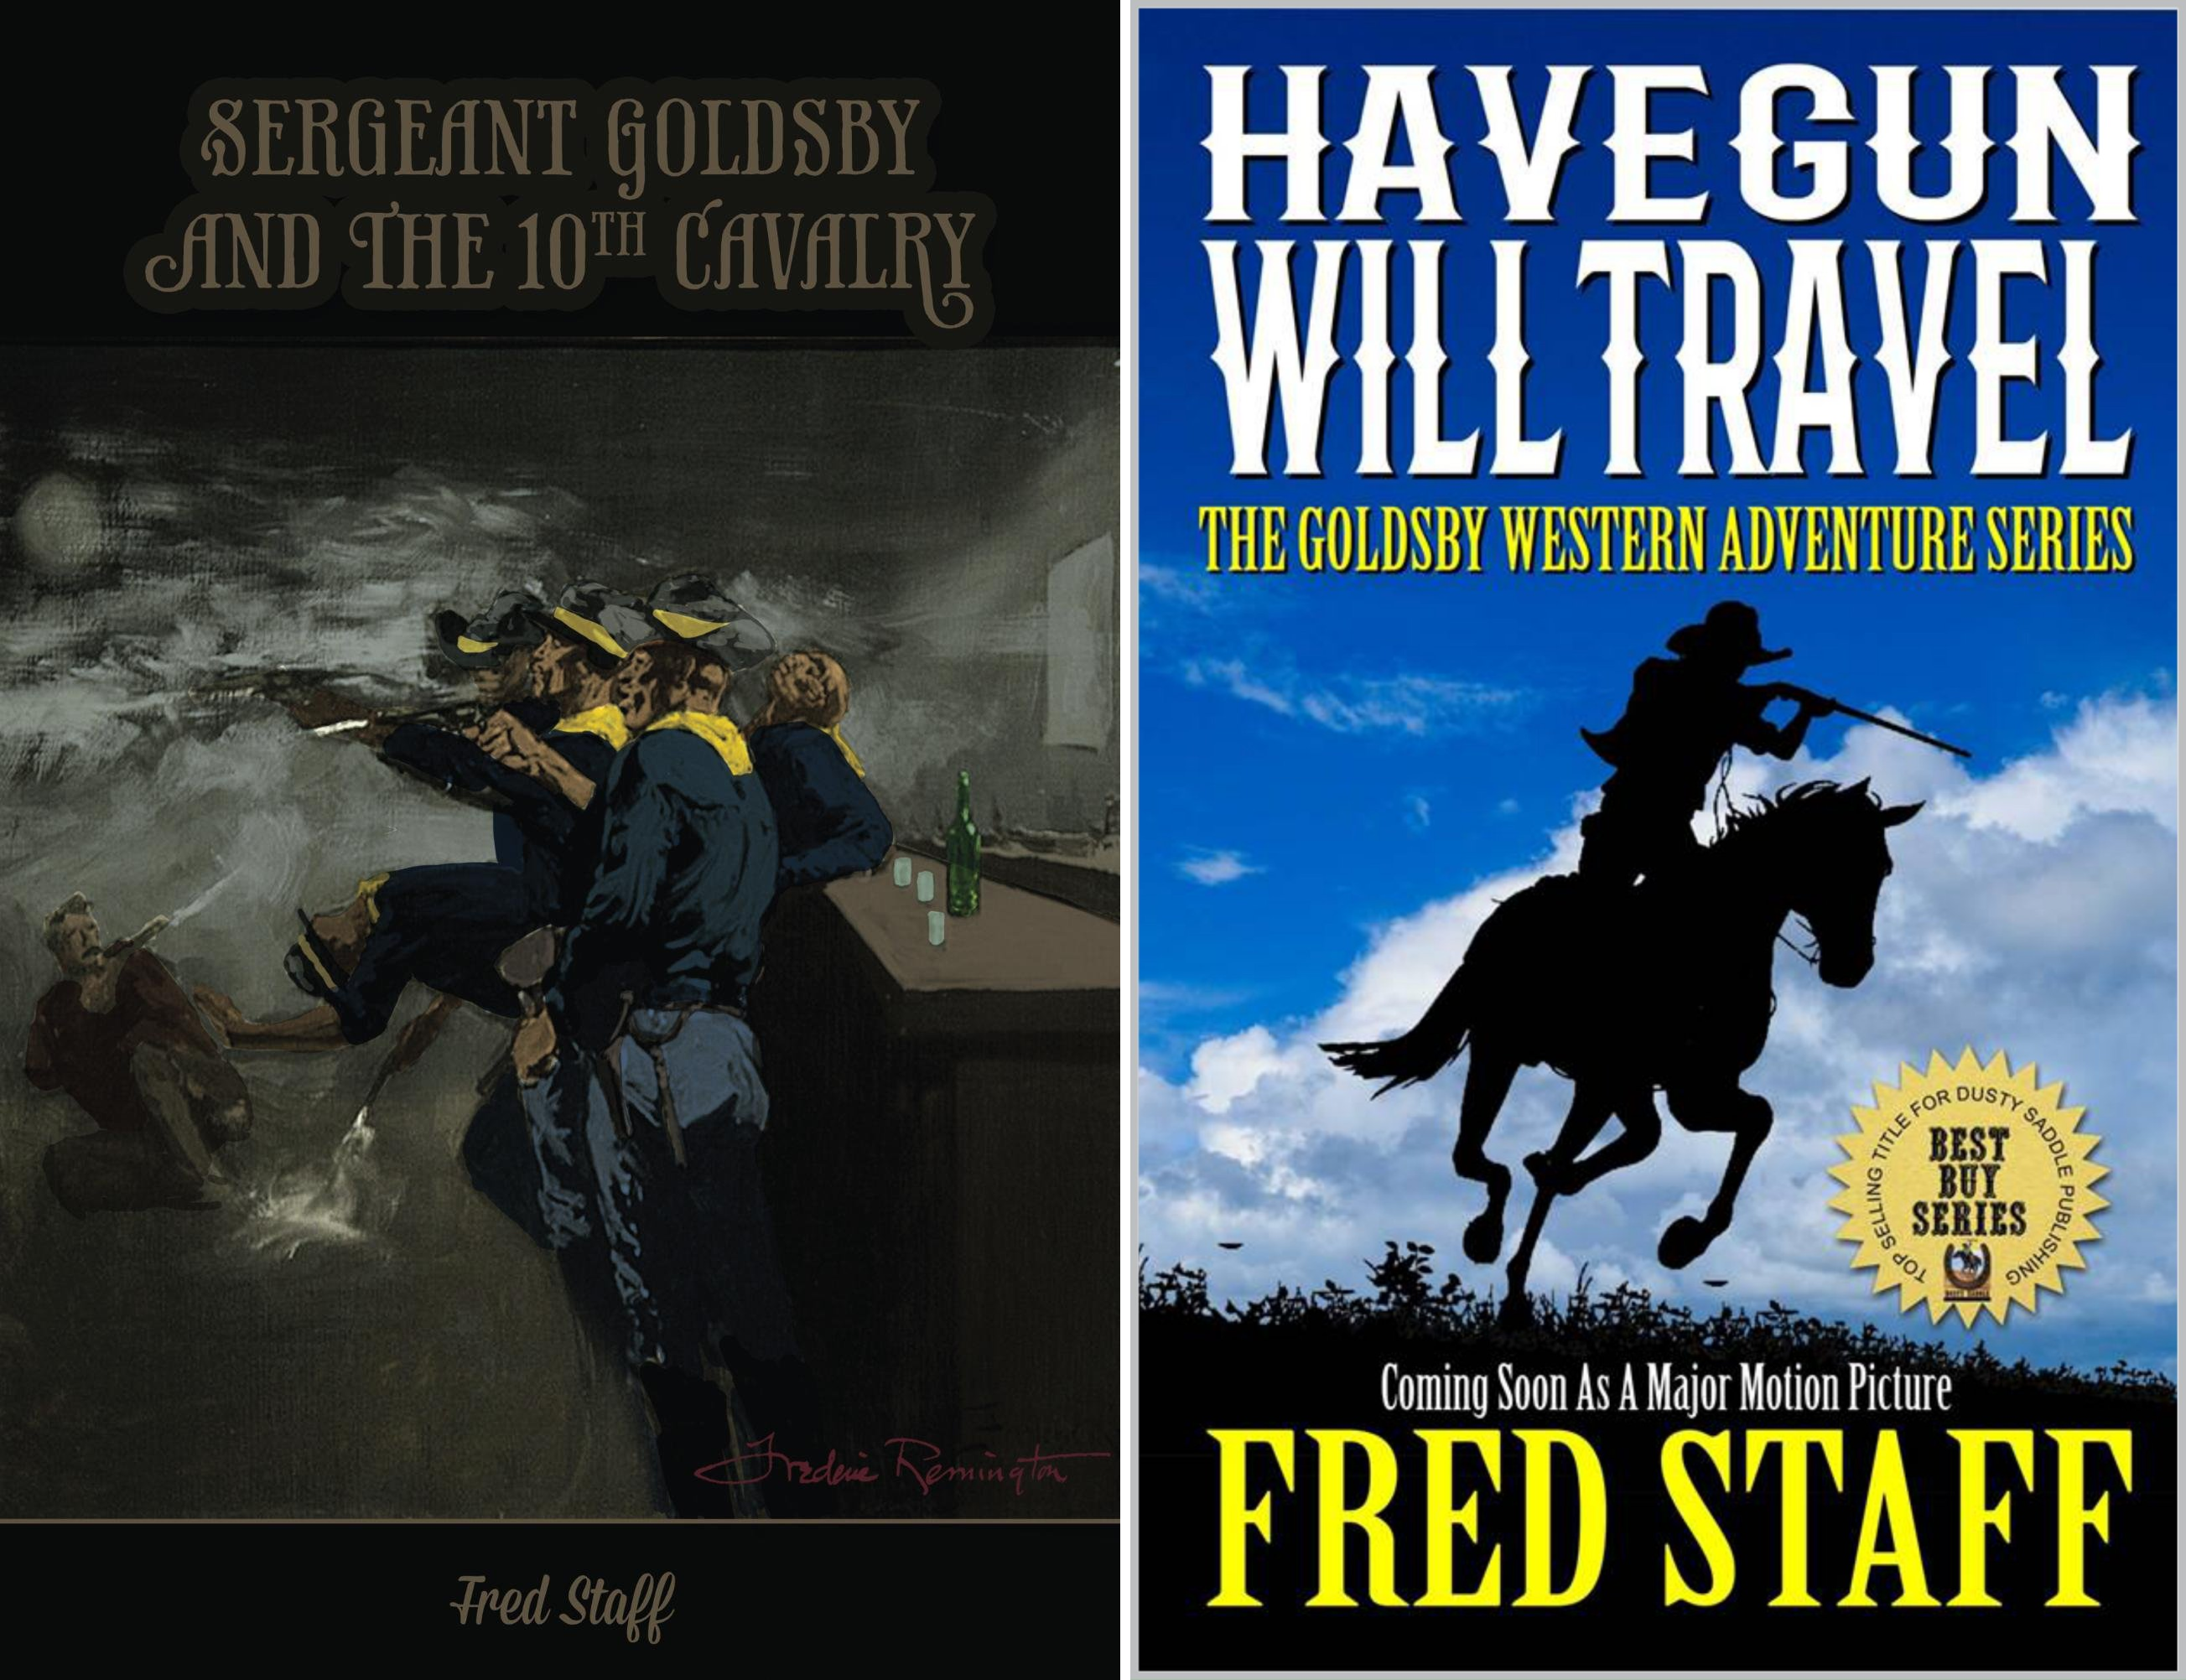 The Goldbsy Western Adventure Series (2 Book Series)